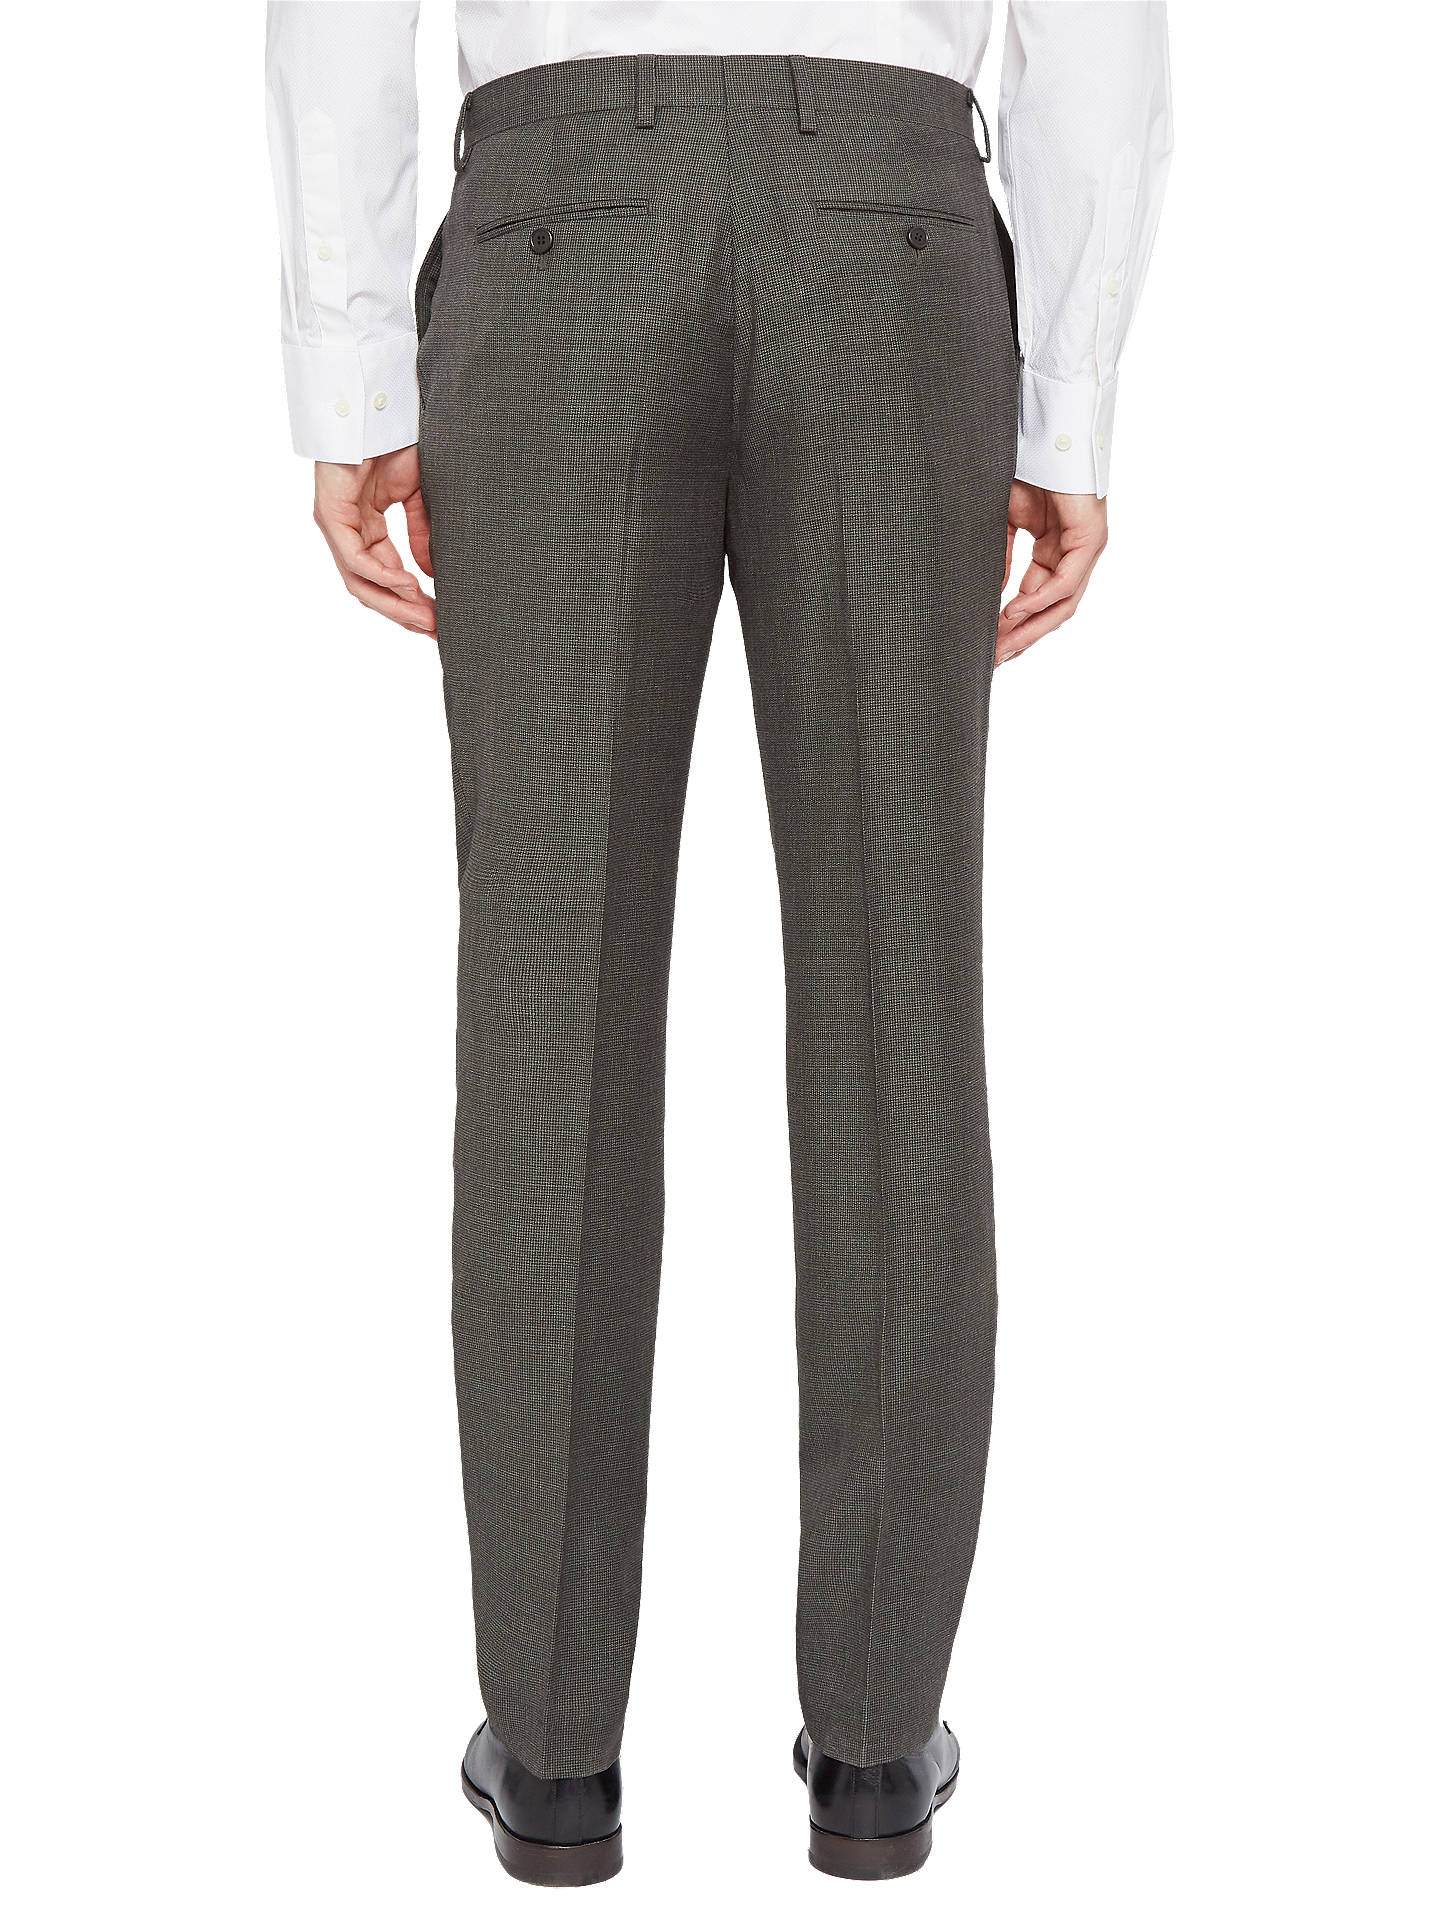 BuyTed Baker Ursusj Micro Weave Tailored Suit Trousers, Grey, 40R Online at johnlewis.com